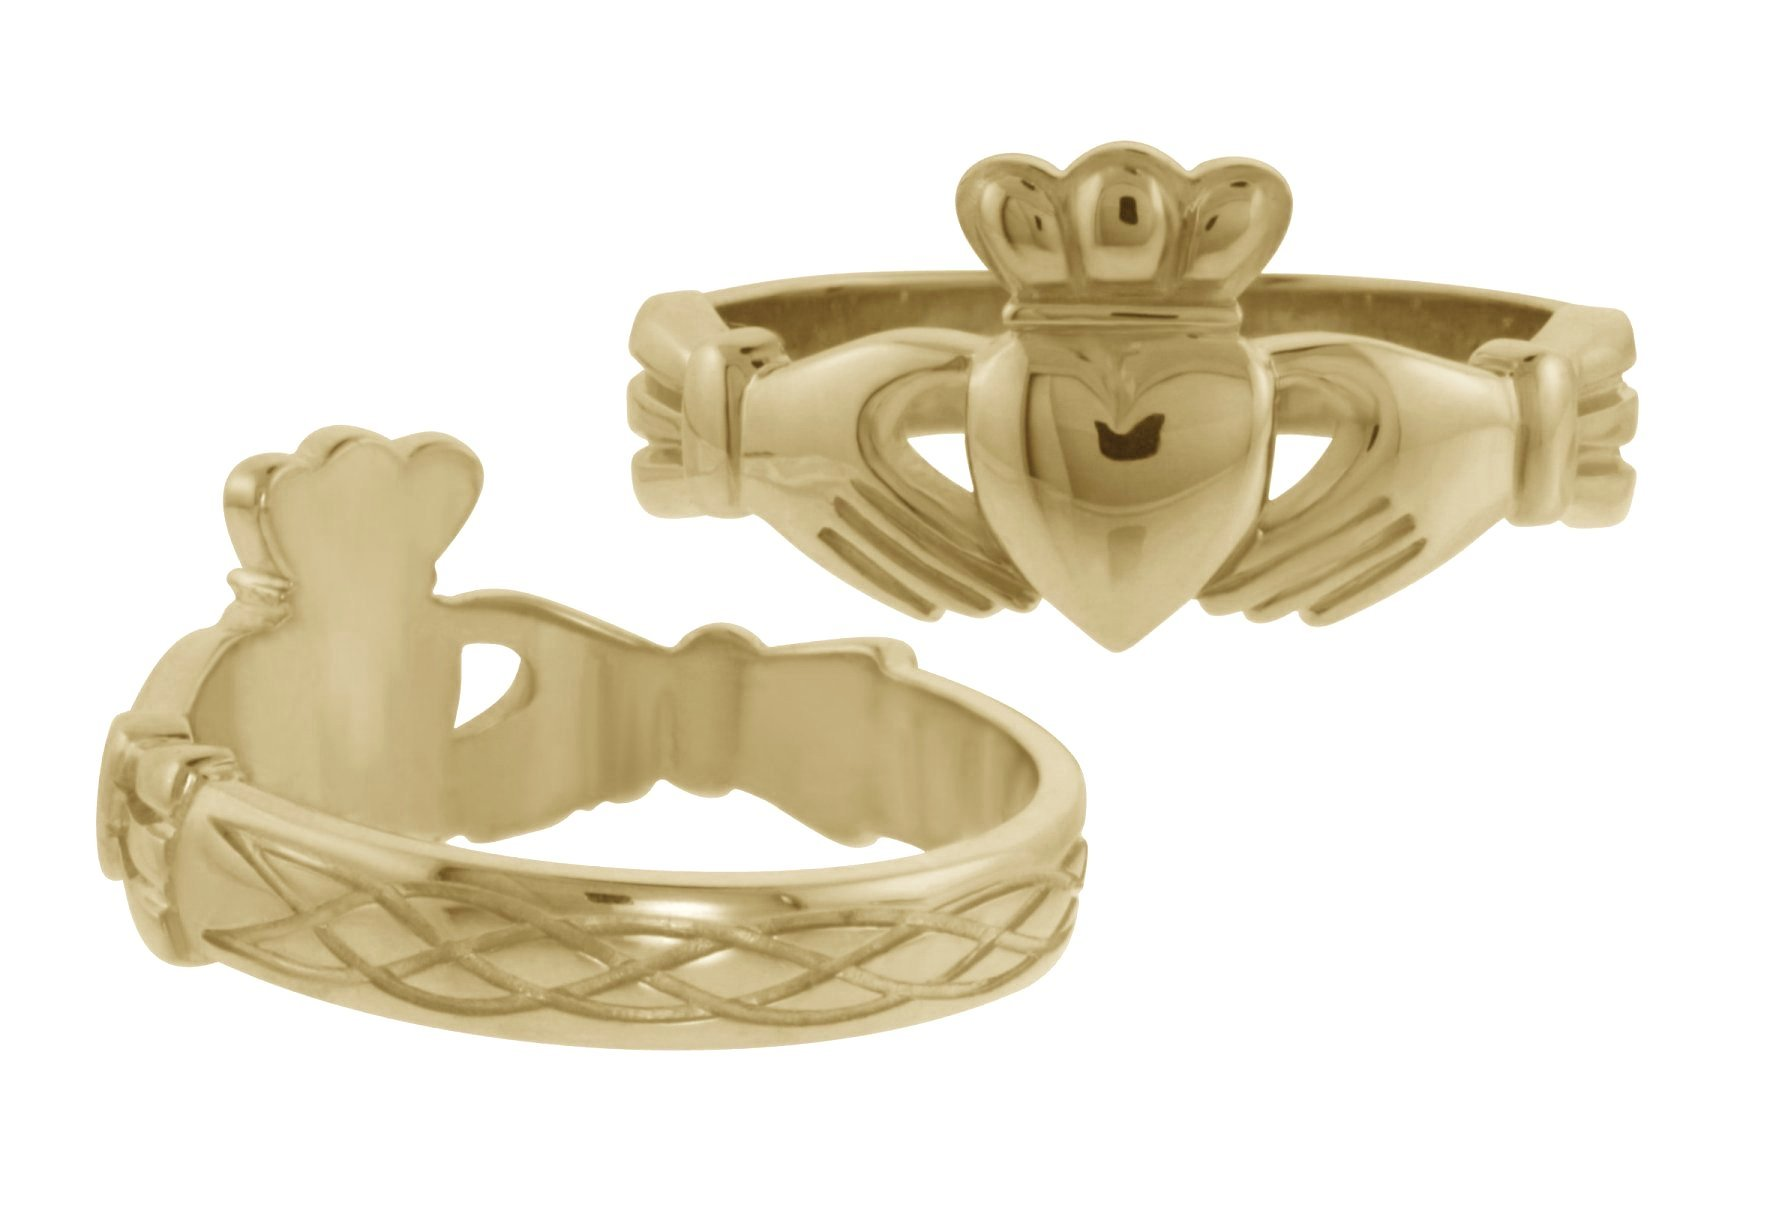 Gold Claddagh Ring with Celtic Design